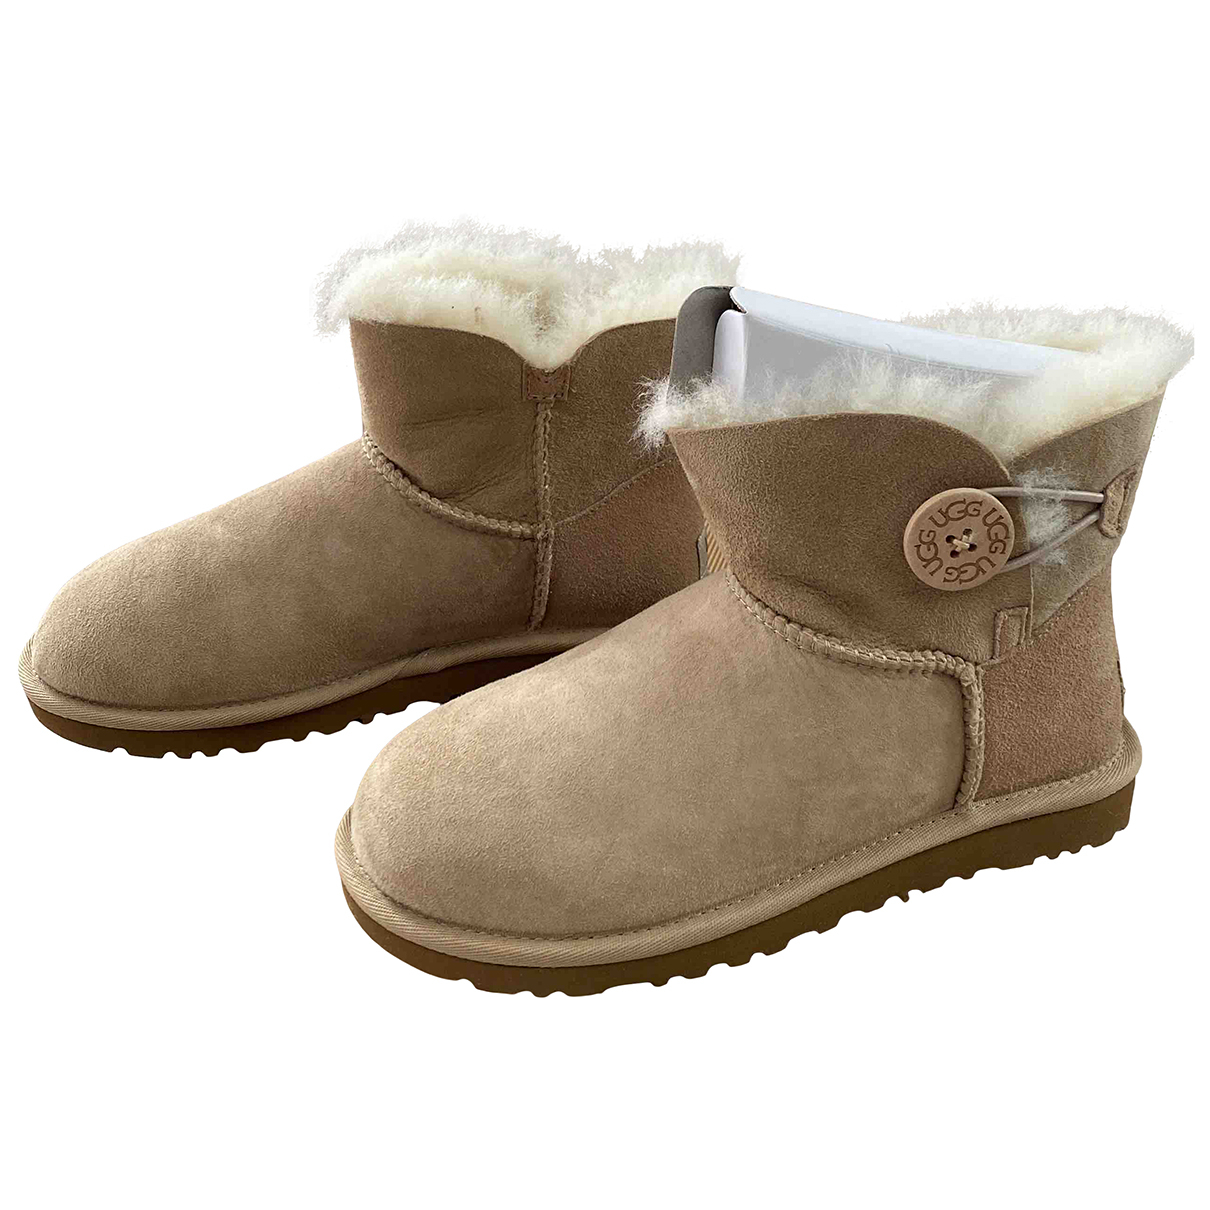 Ugg N Beige Suede Ankle boots for Women 36 EU